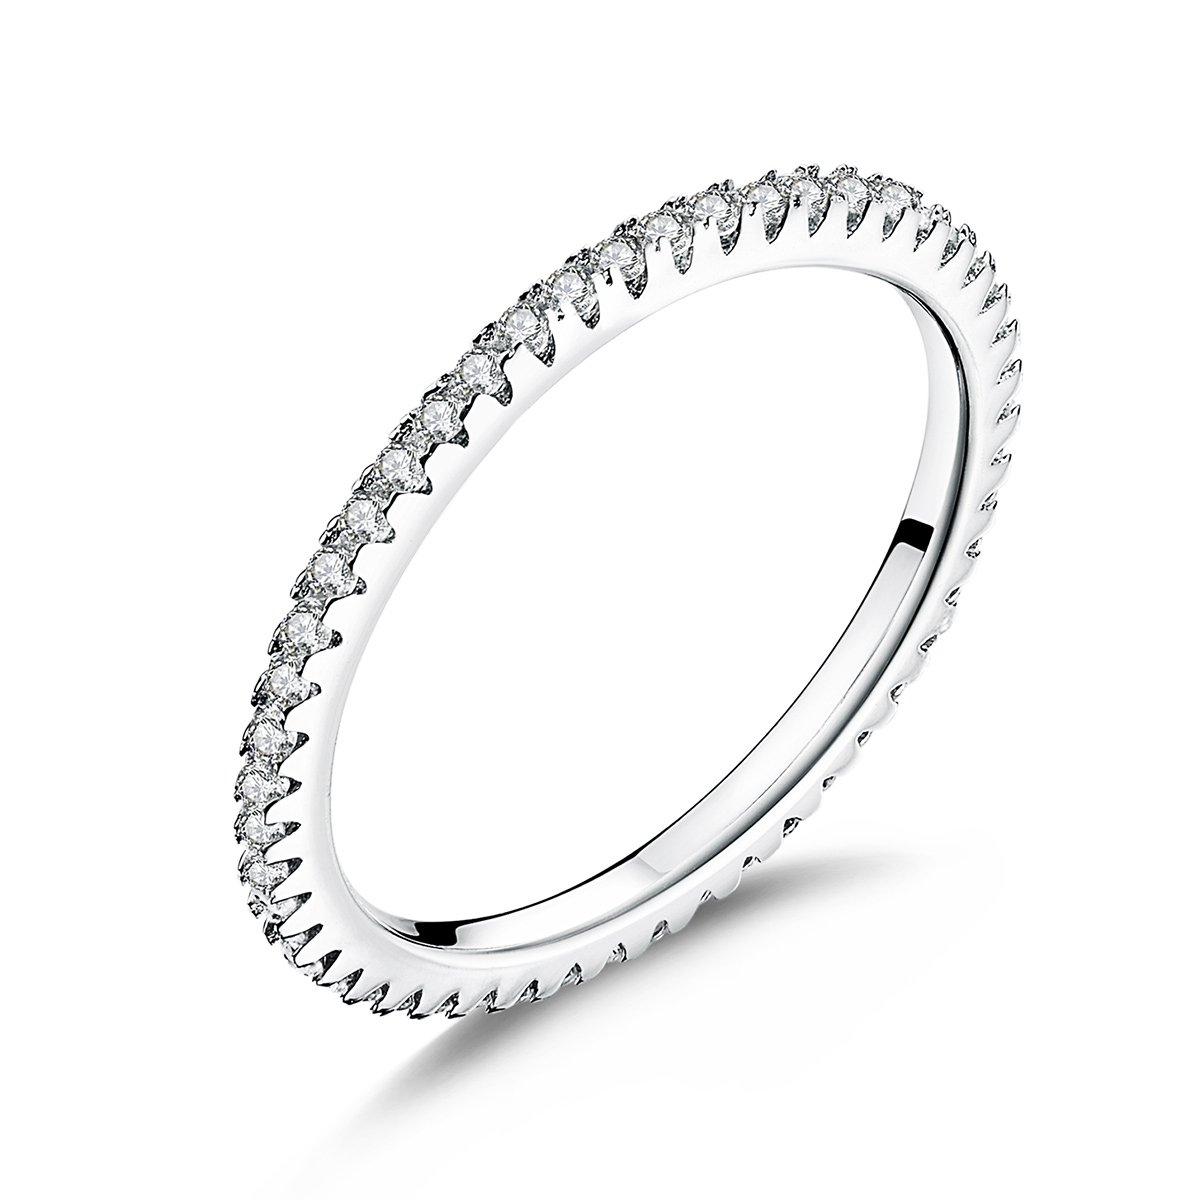 WOSTU 1.5MM Thin Band Eternity Rings Platinum Plated 925 Sterling Silver Cubic Zirconia Engagement Rings